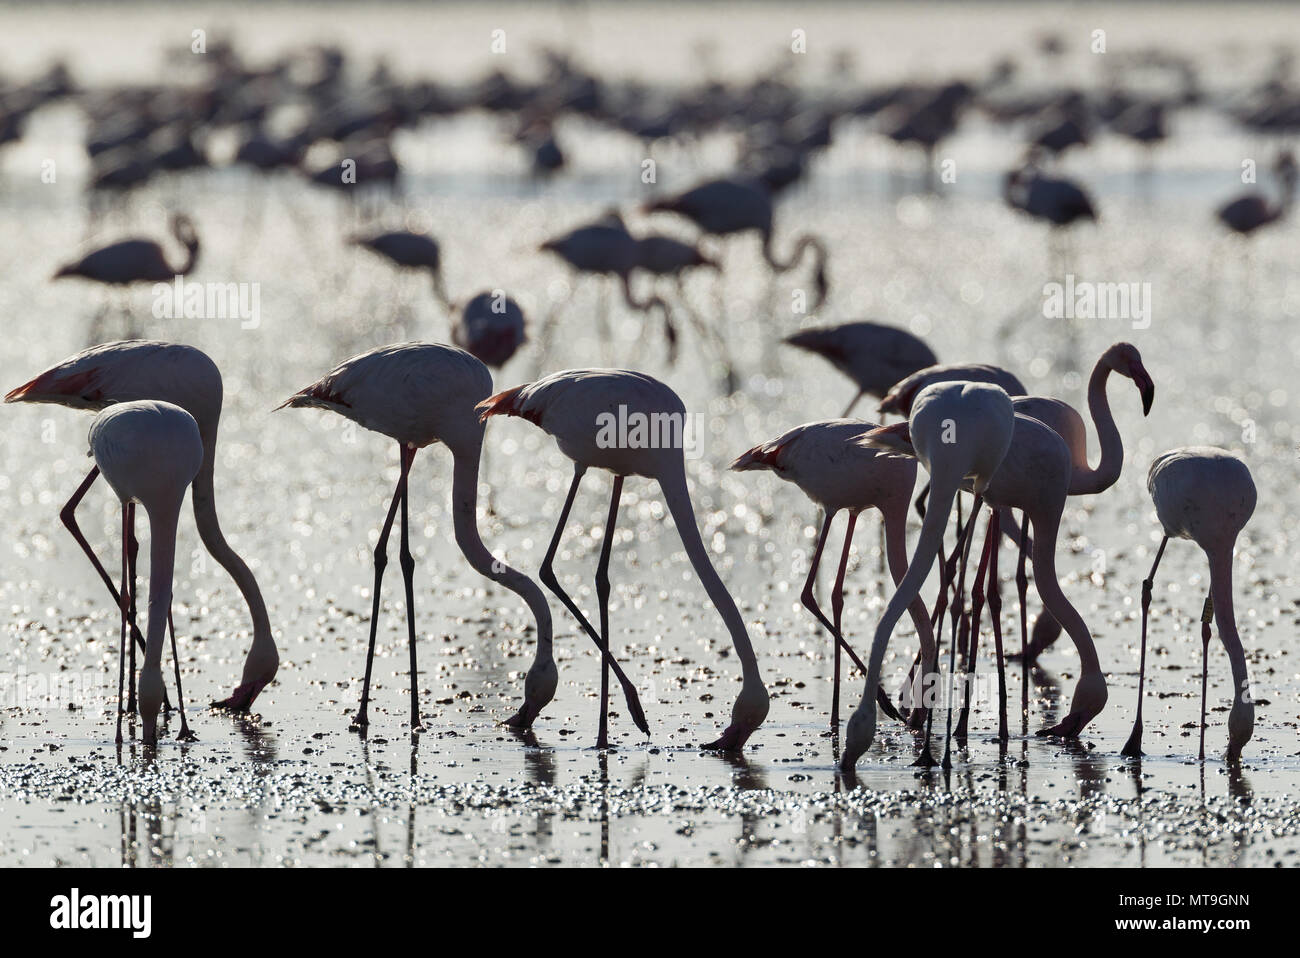 Greater Flamingo (Phoenicopterus roseus). Feeding by filtering the water with their beaks. At the Laguna de Fuente de Piedra near the town of Antequera. This is the largest natural lake in Andalusia and Europe's only inland breeding ground for this species. Malaga province, Andalusia, Spain. - Stock Image